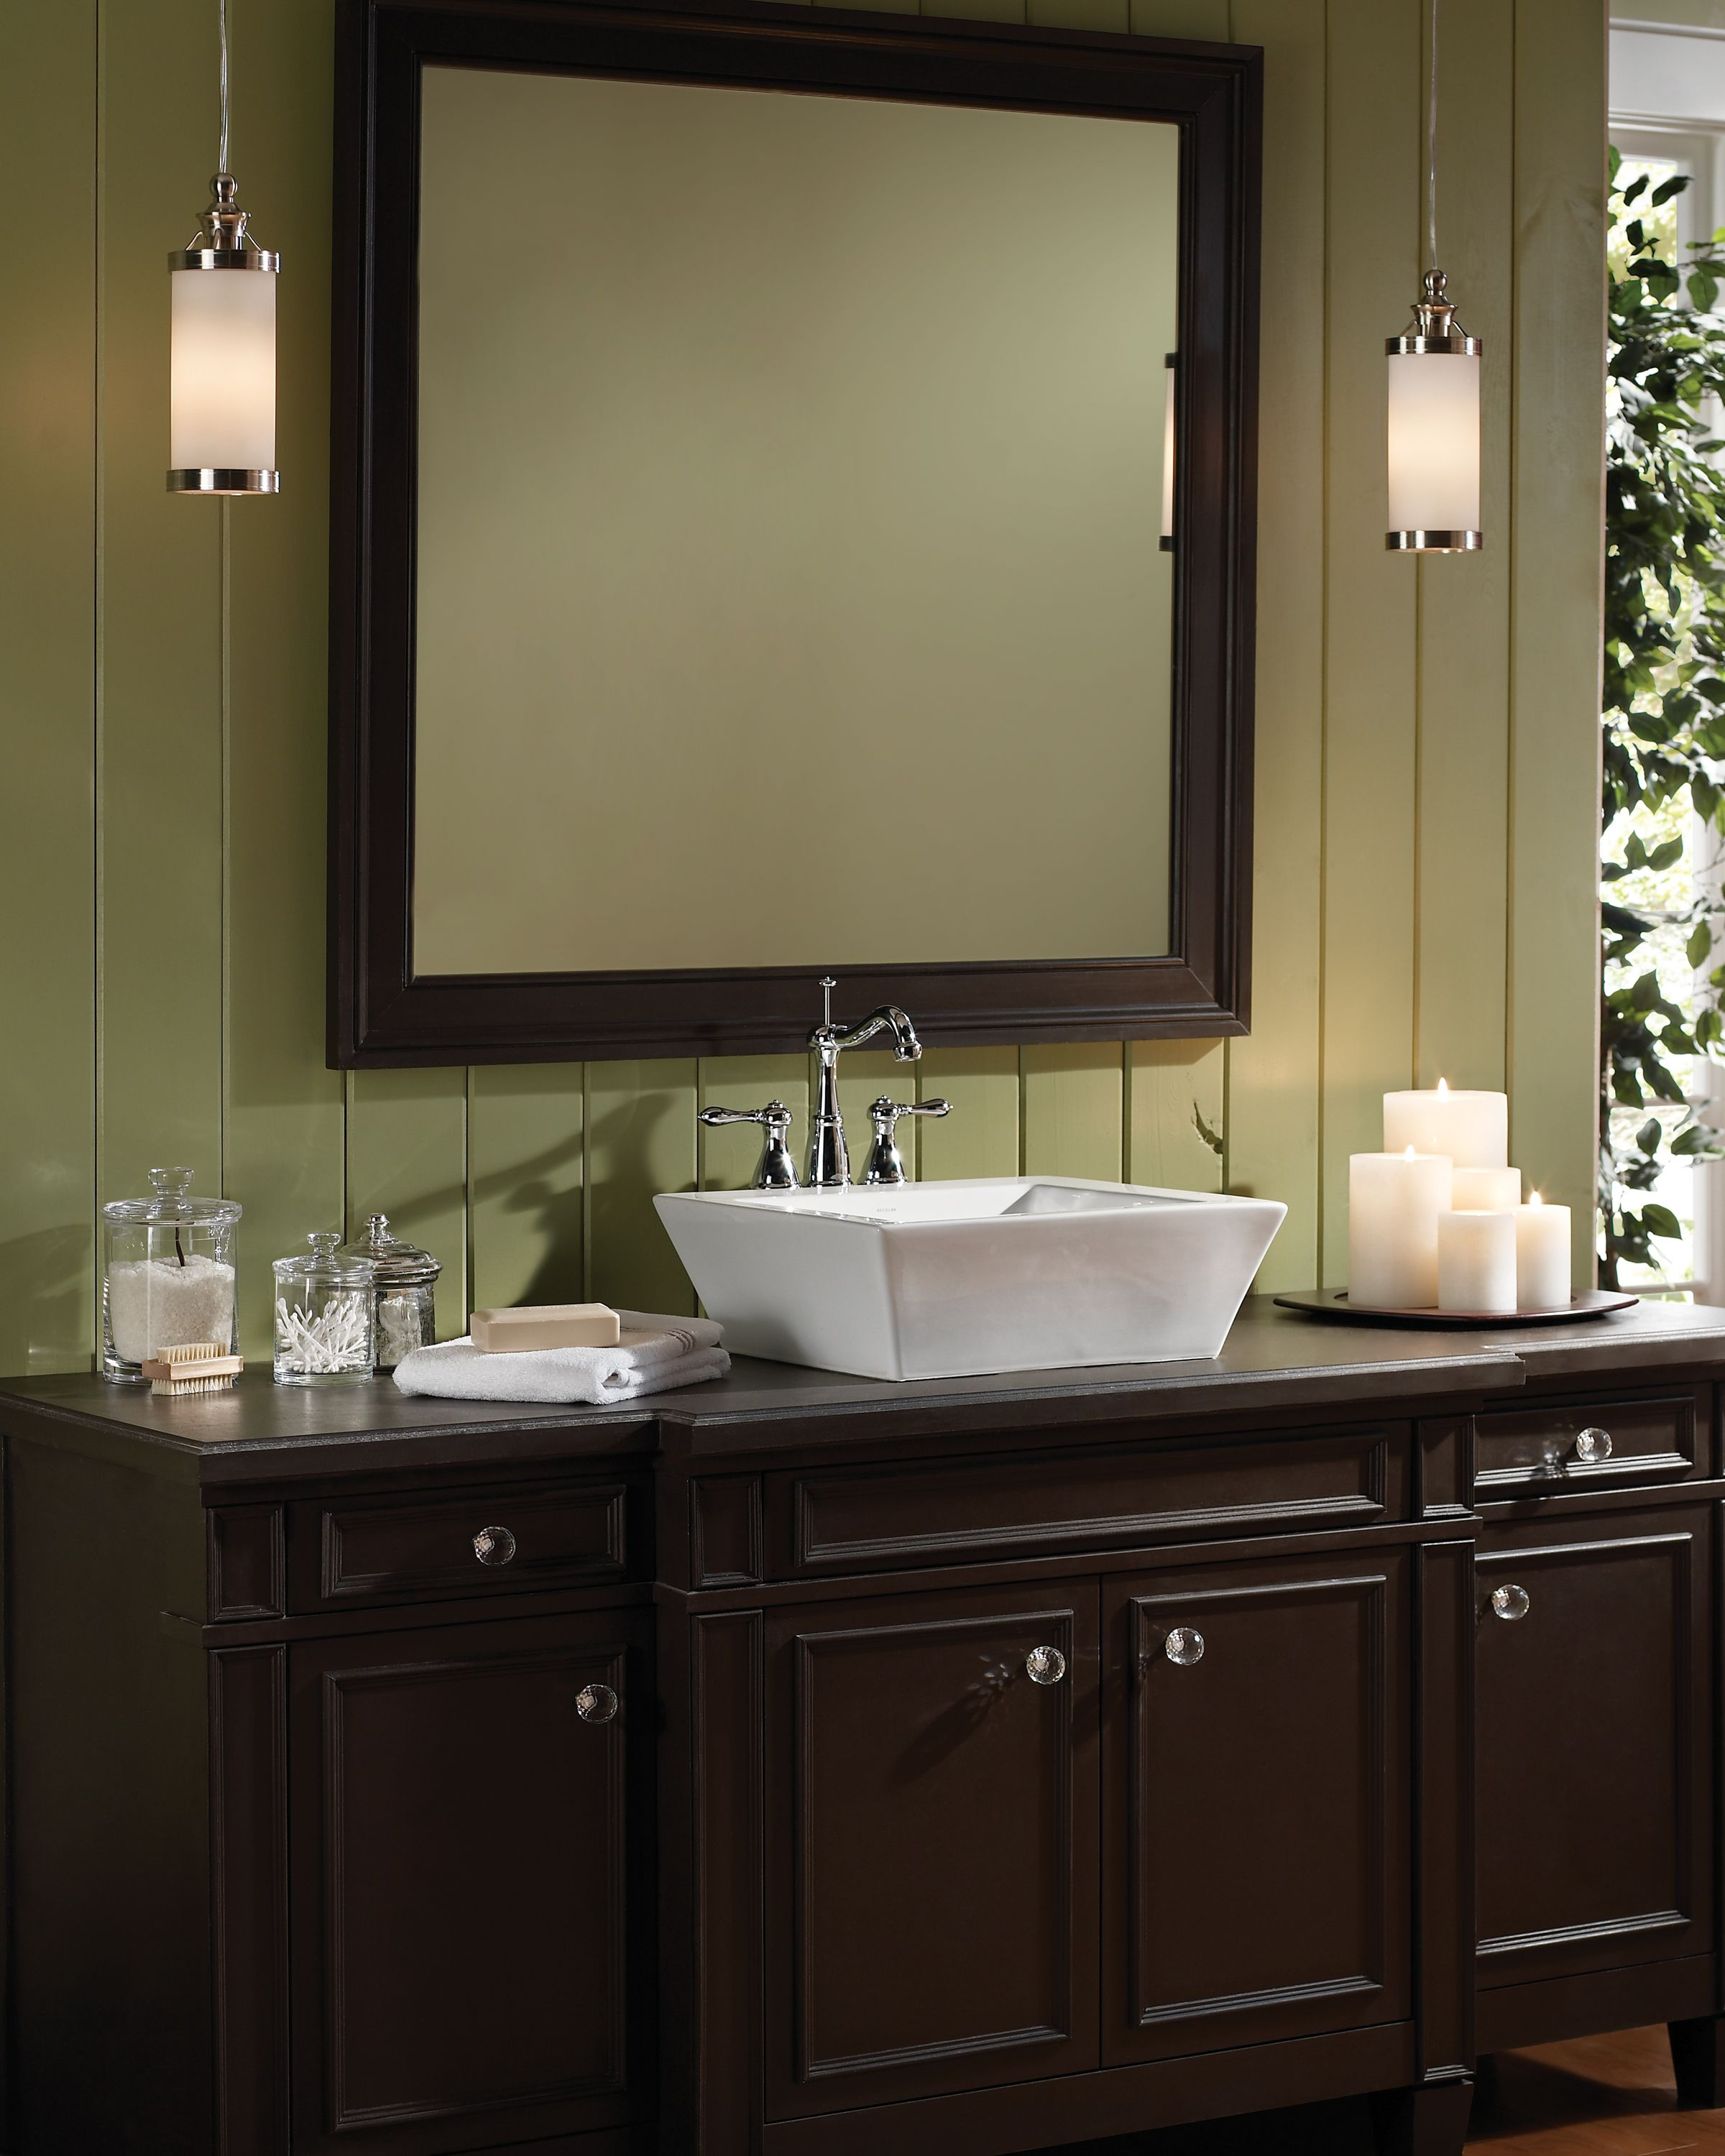 Bridgeport pendant by tech lighting in bathroom for Bathroom pendant lighting ideas